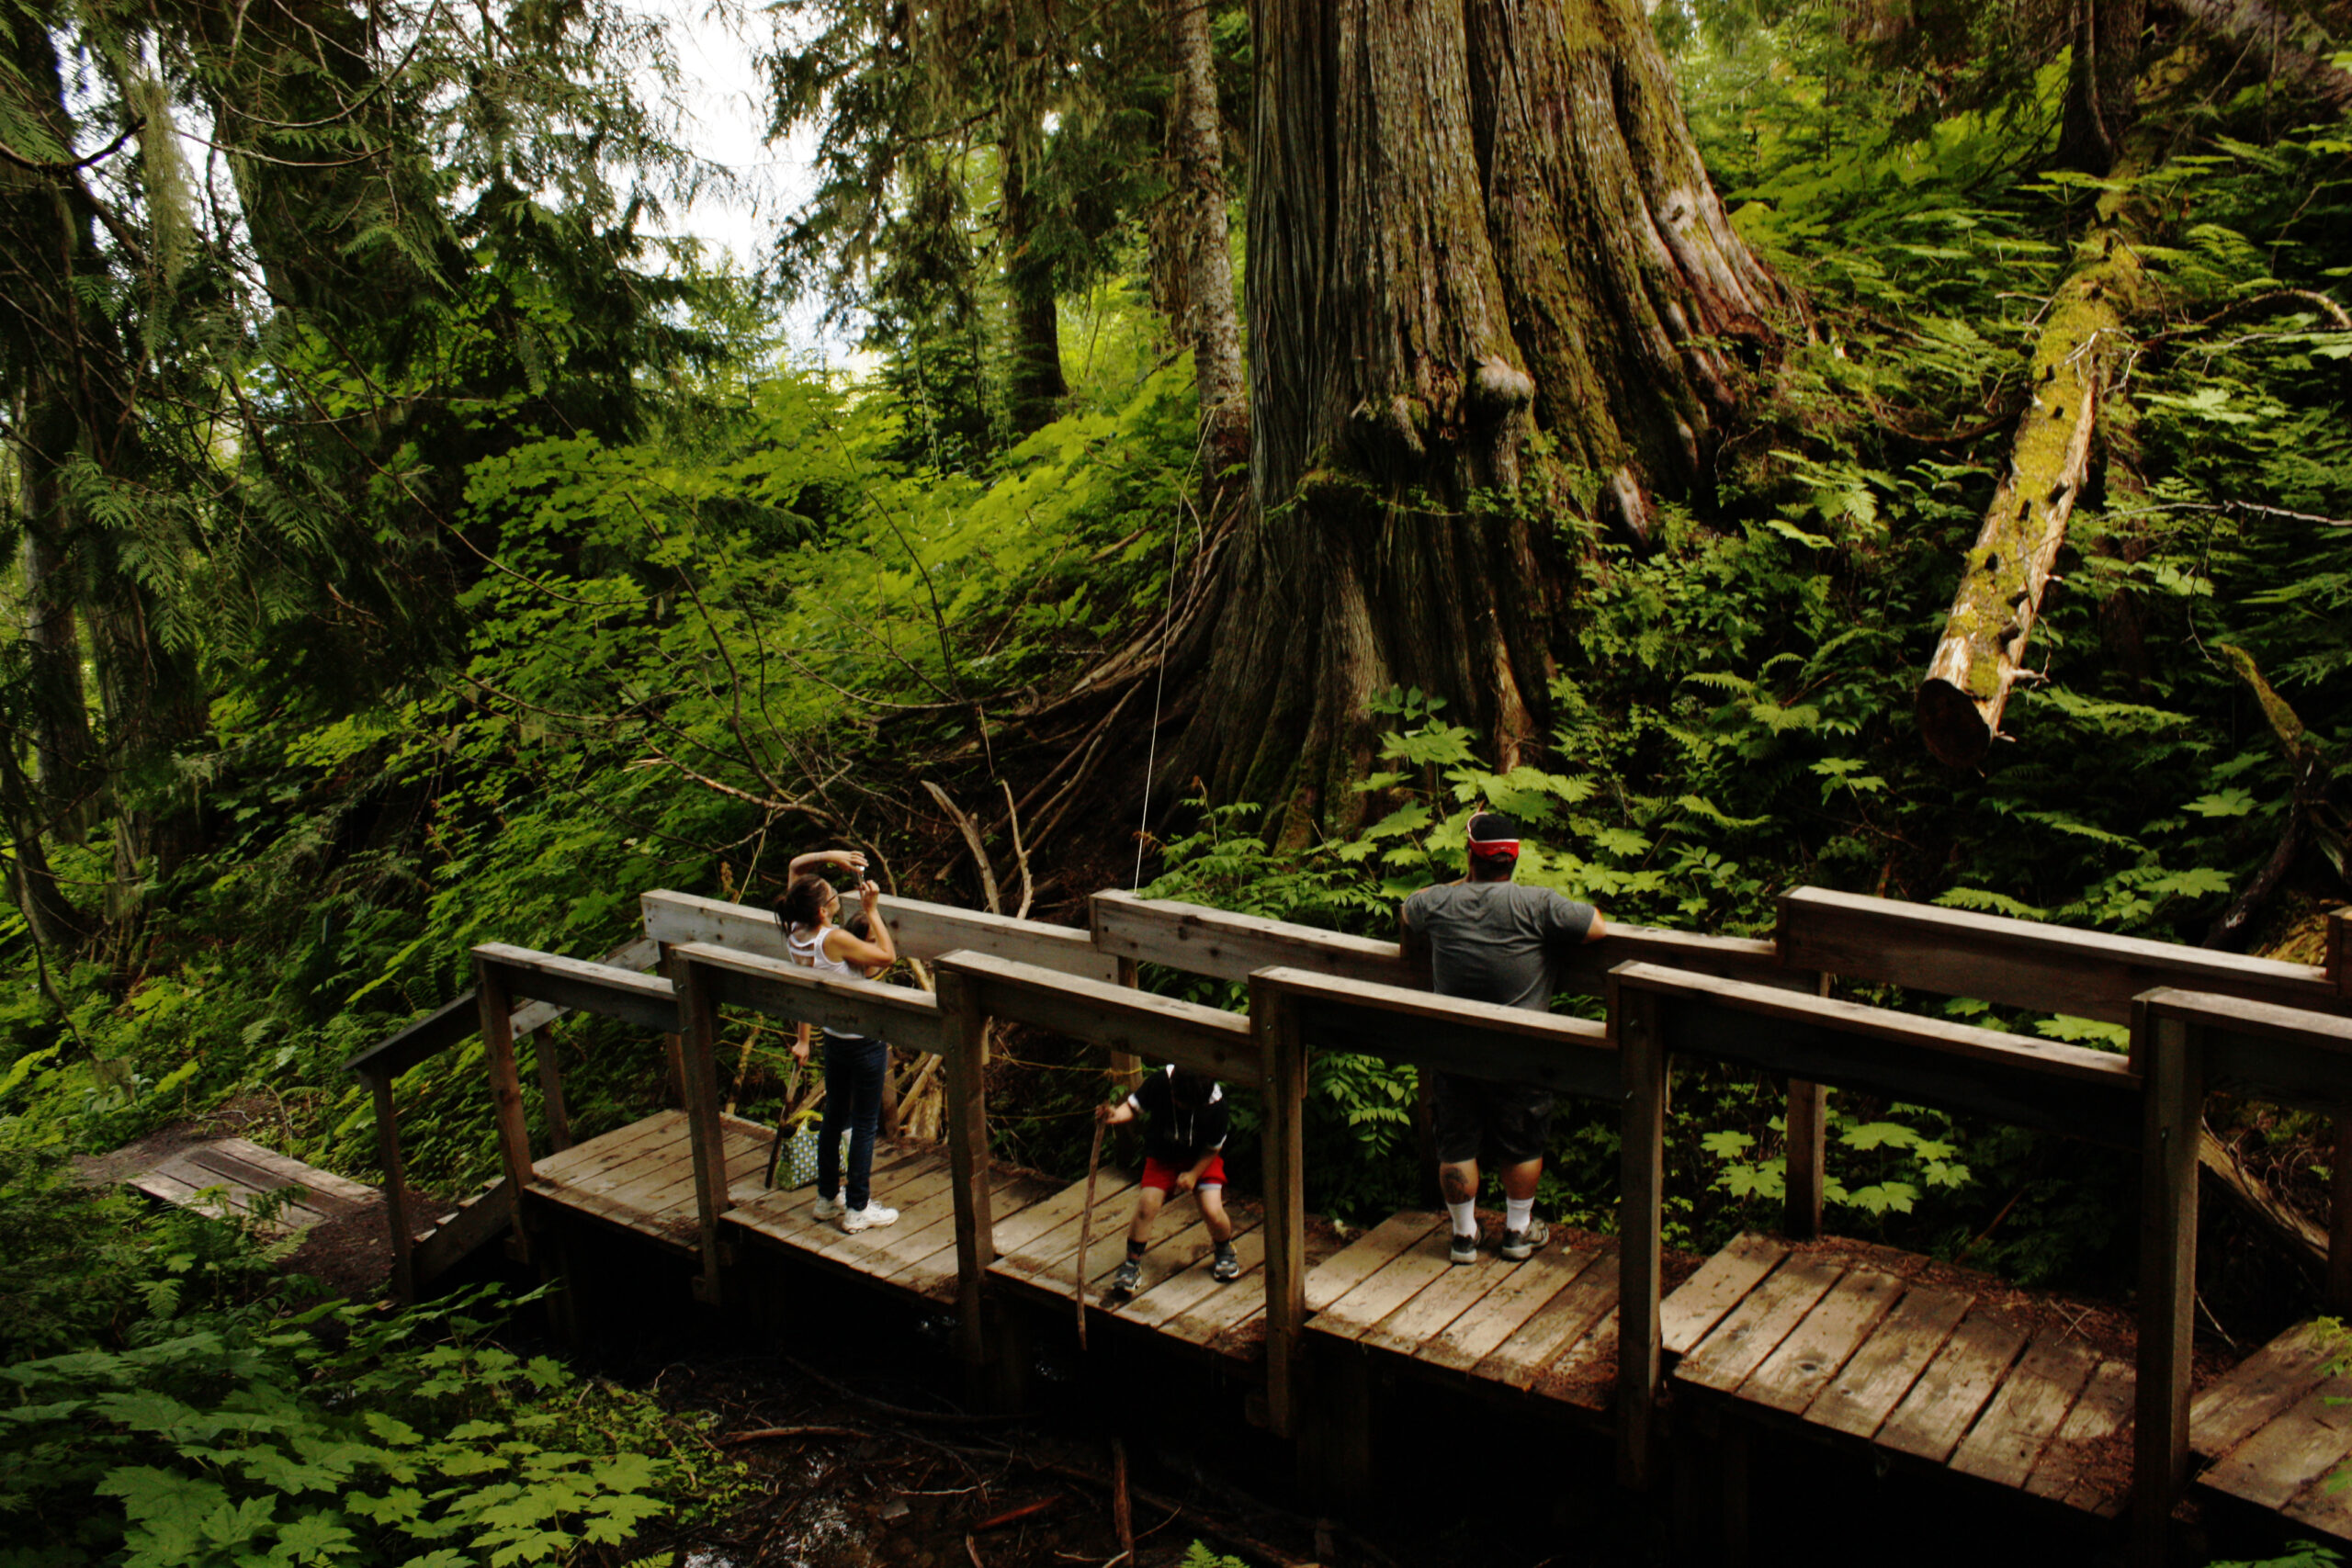 Big scale photo display of Robson Valley's Ancient Forest